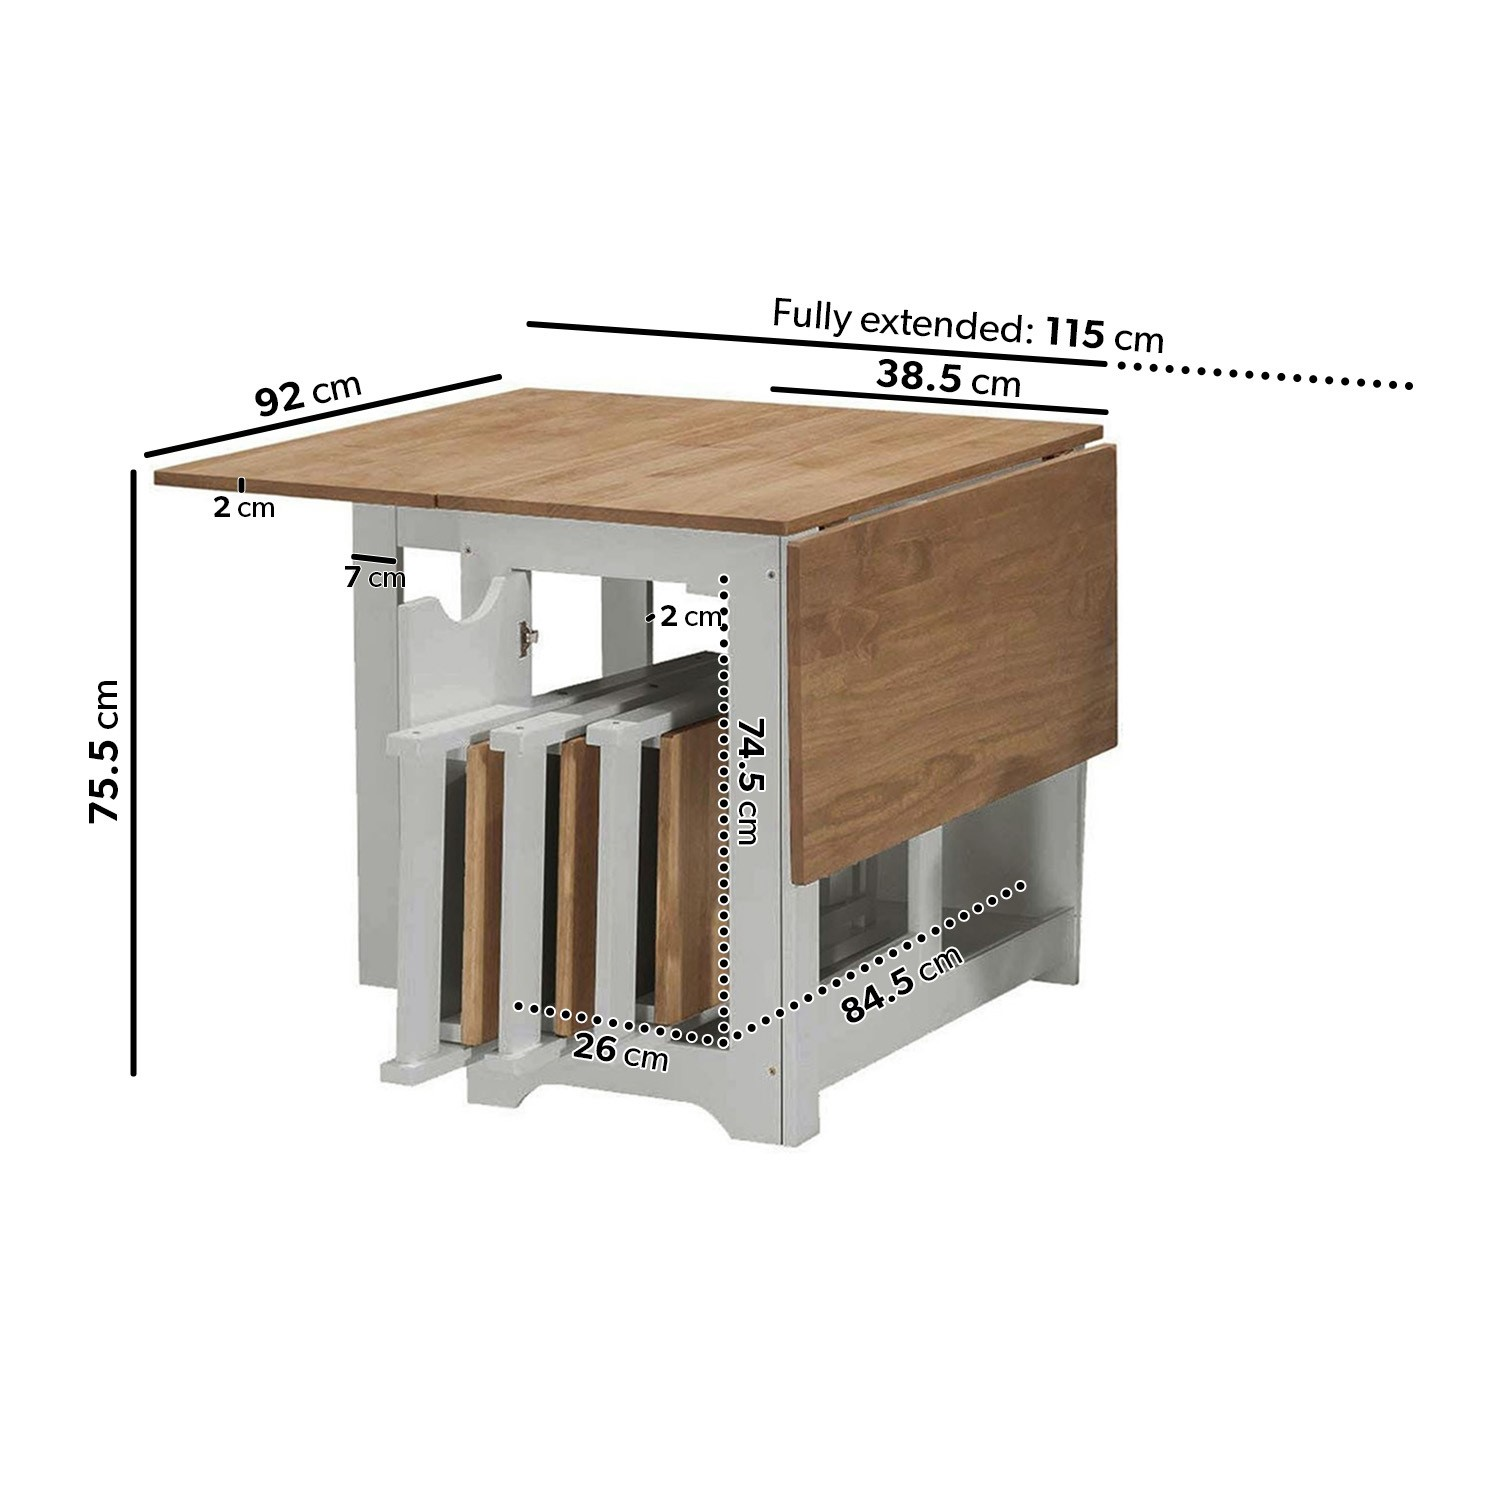 Pleasing Seconique Santos Butterfly Folding Dining Set In Grey Pine With 4 Dining Chairs Cjindustries Chair Design For Home Cjindustriesco